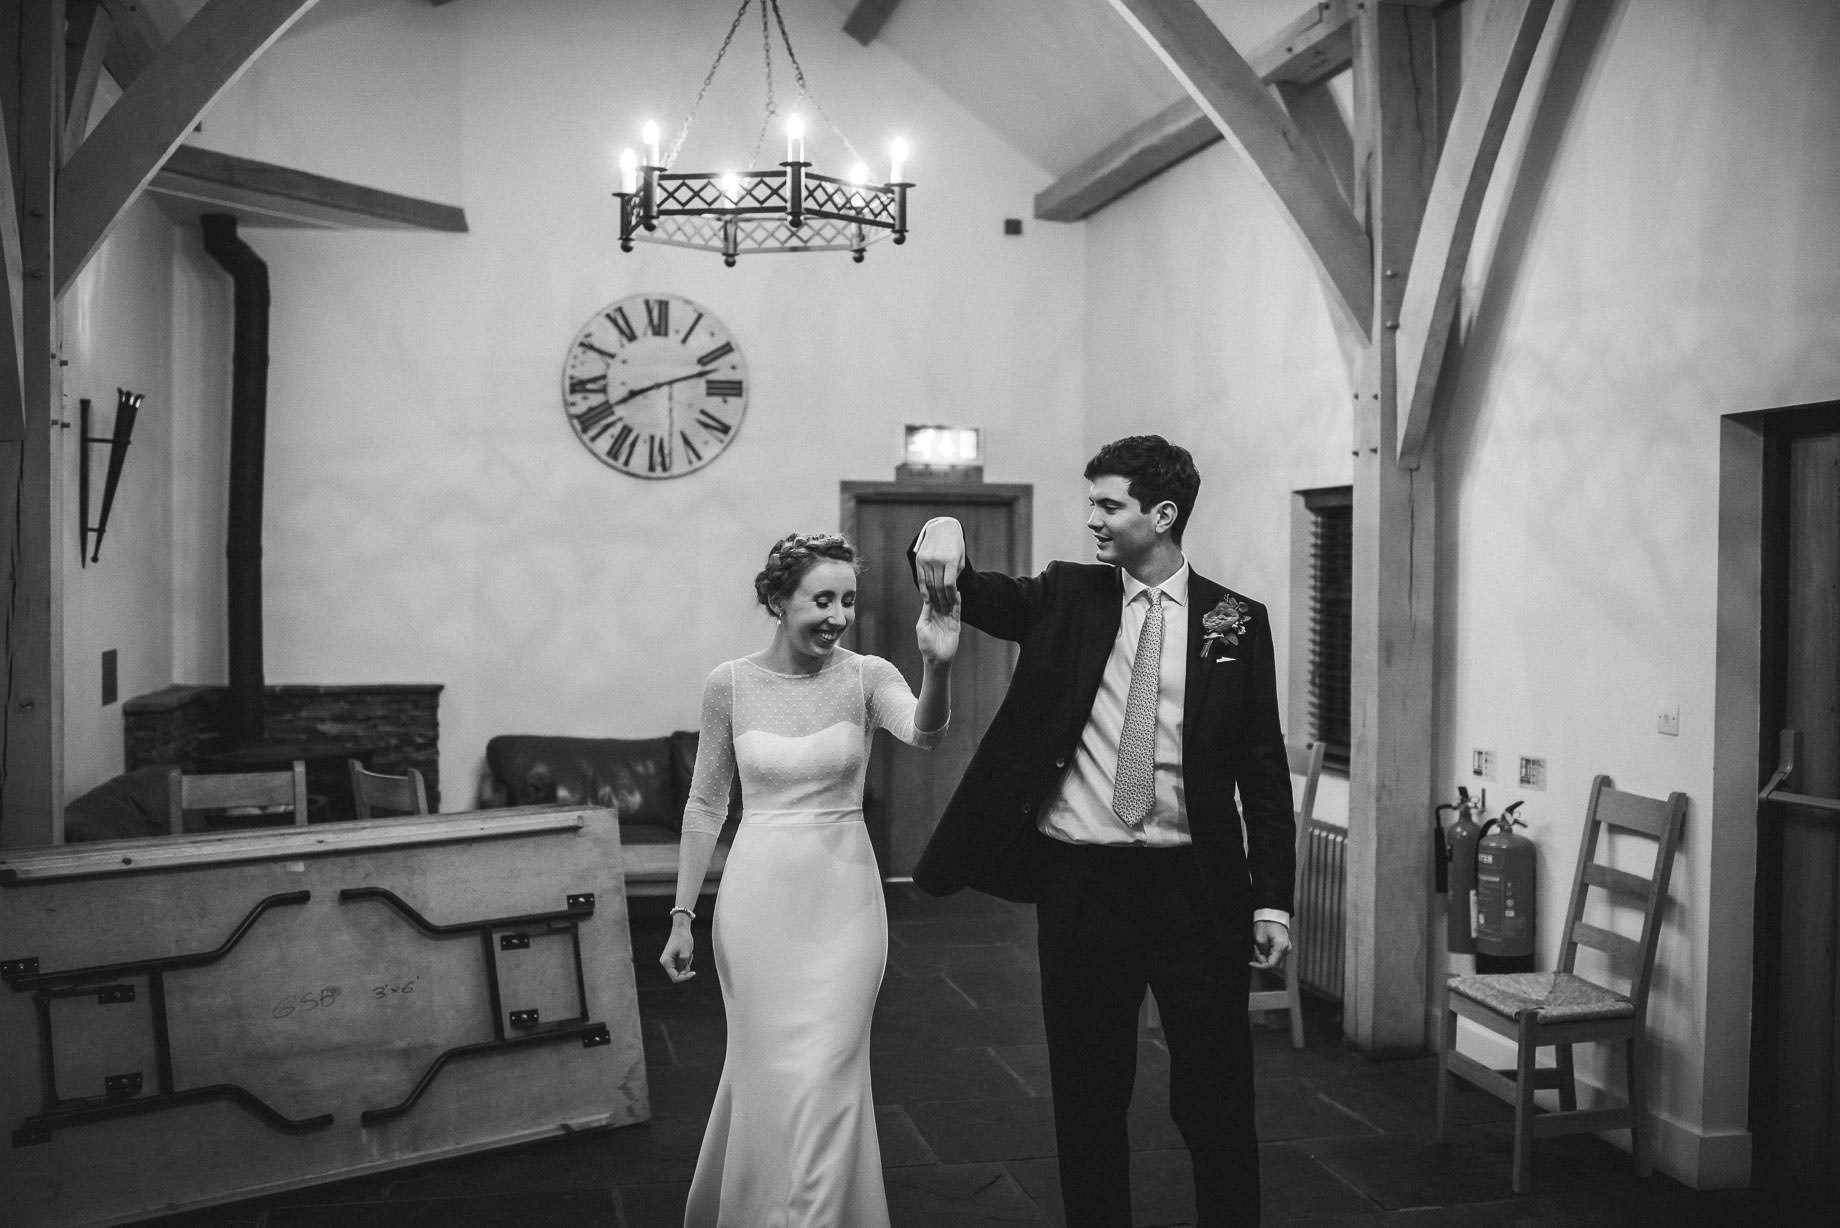 Gate Street Barn wedding photography - Charlotte + Nicolas